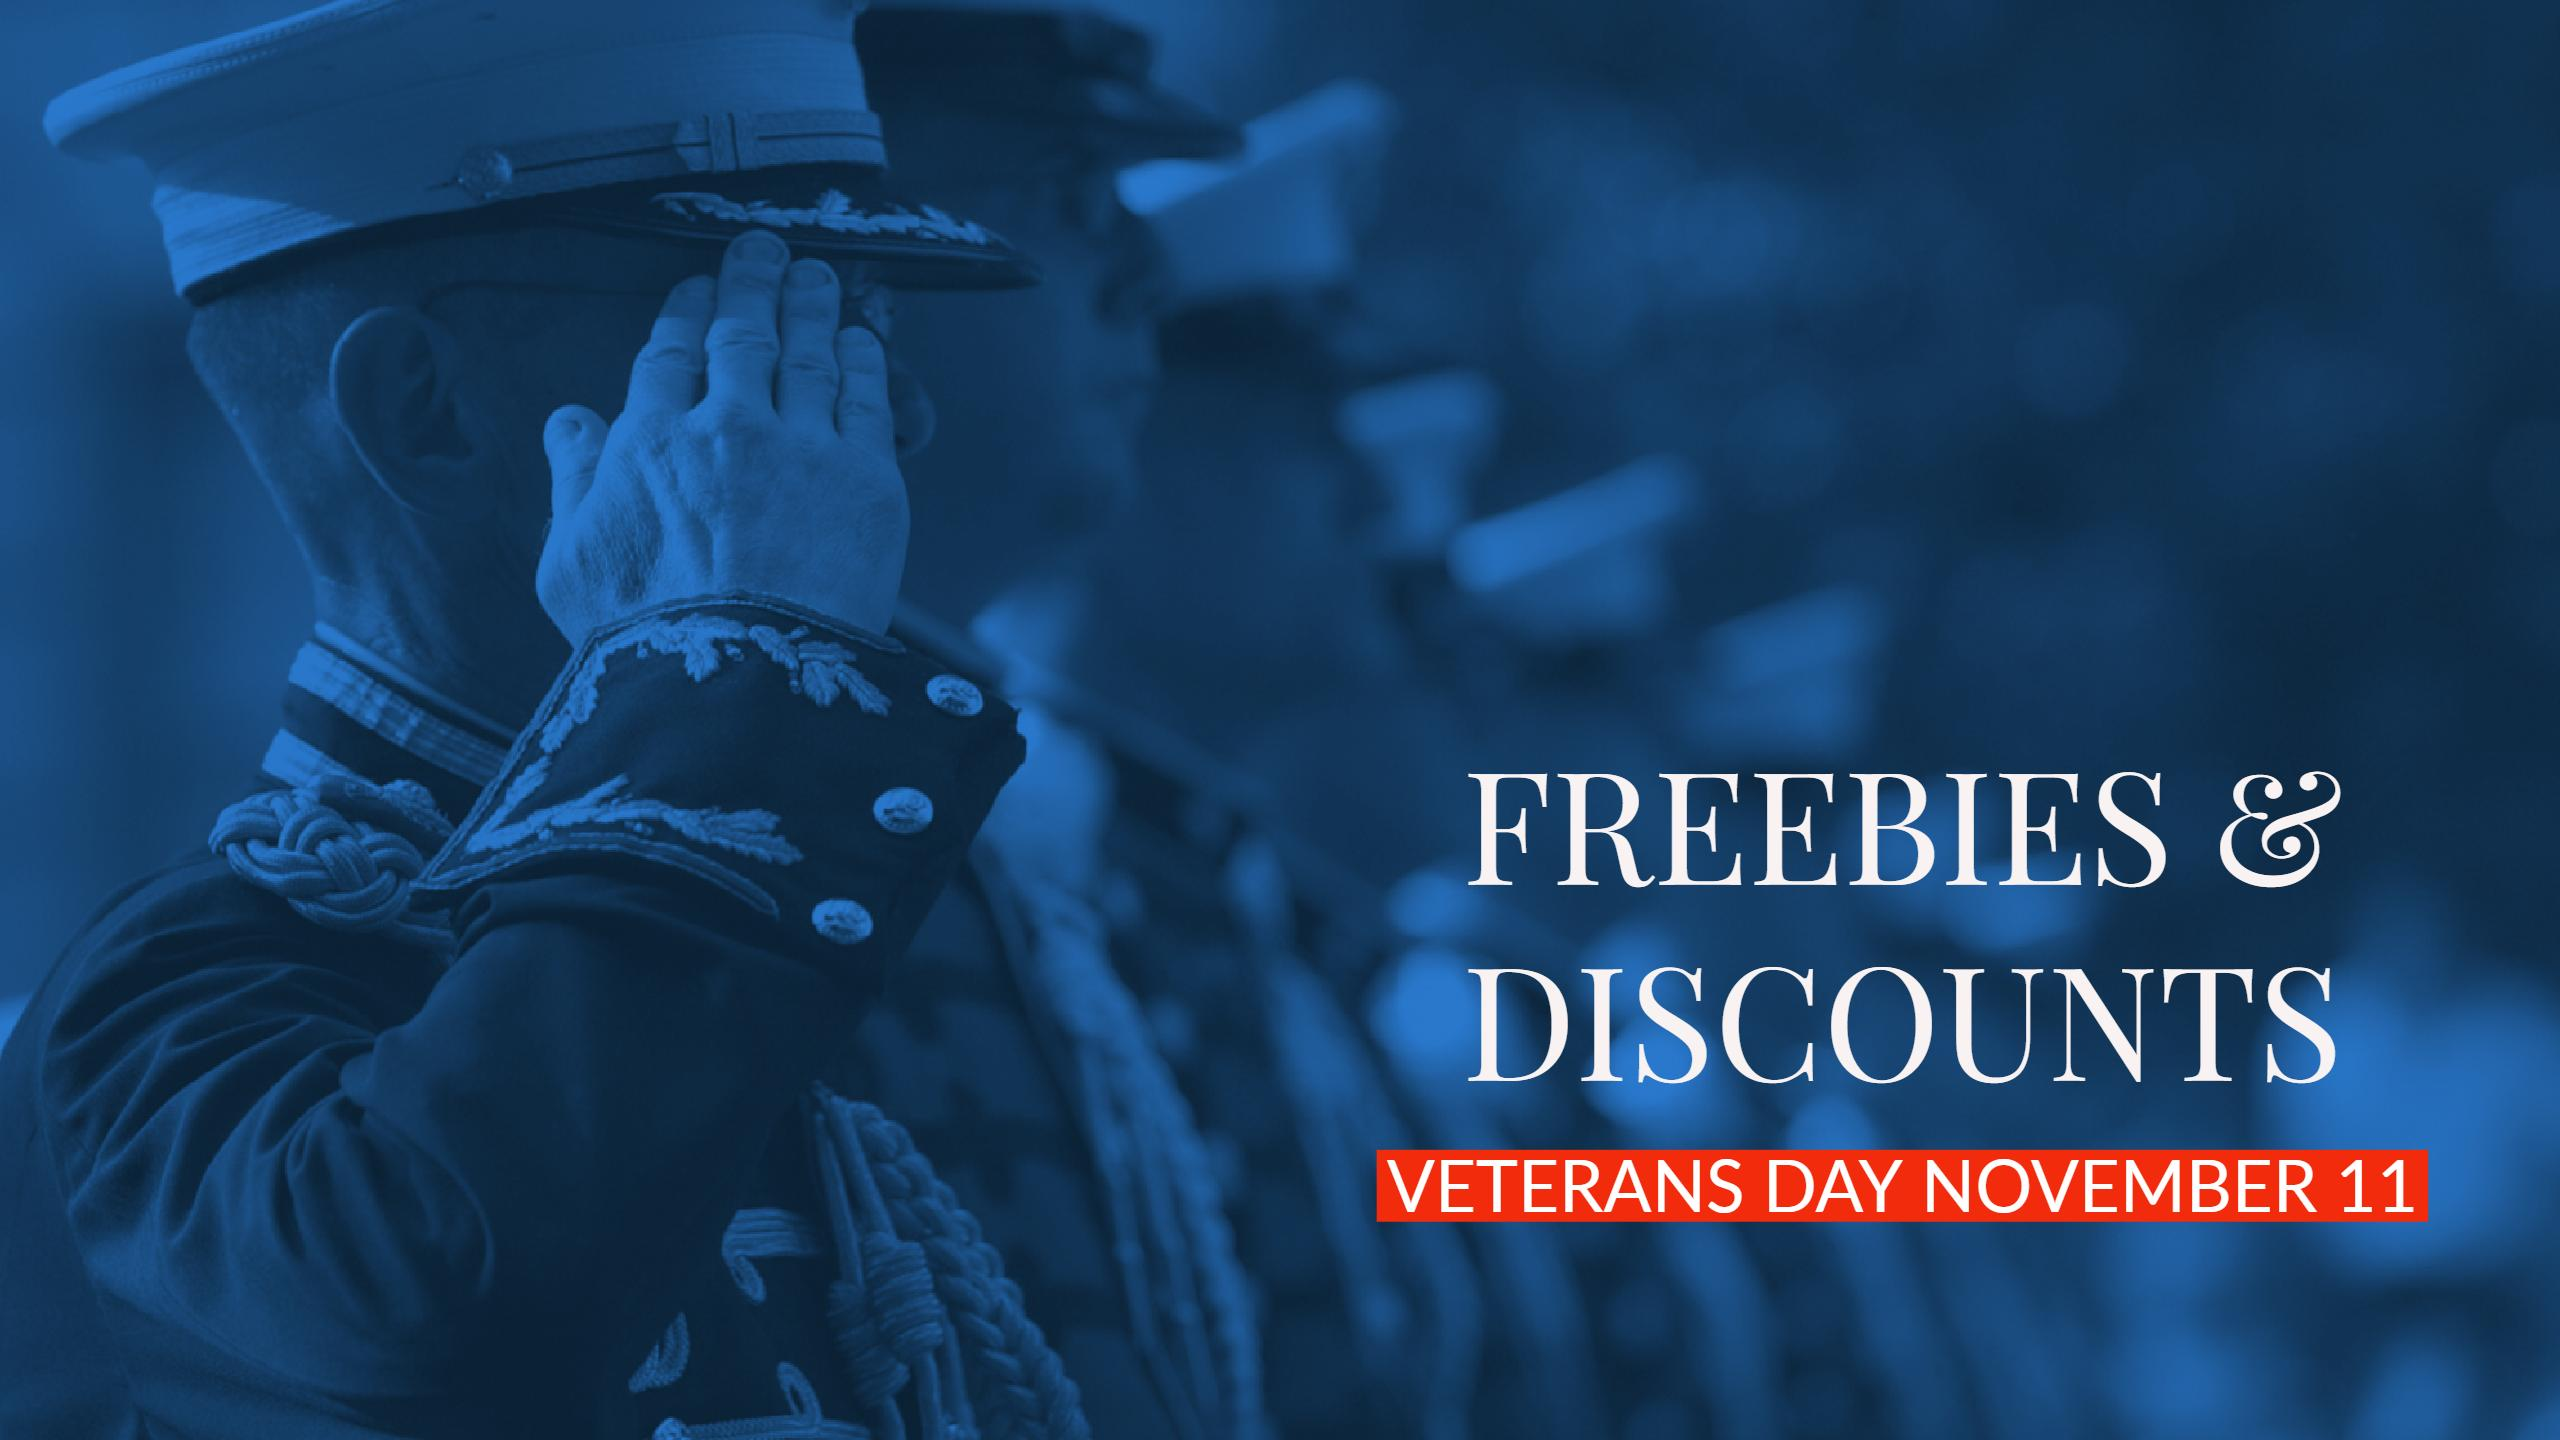 Veterans Day Discounts Freebies_656519